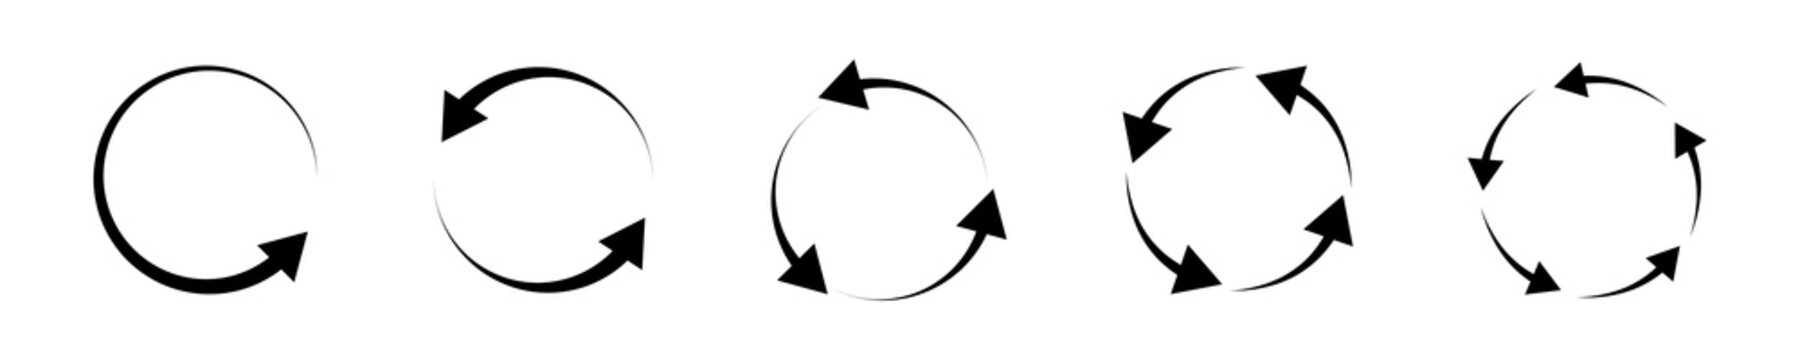 Recycle refresh rotate arrows icon set. Recycling arrow icon set. Rotation arrws set. Different arrows collection. Black arrows collection. Up arrow button symbol. Start-up. Vector graphic.